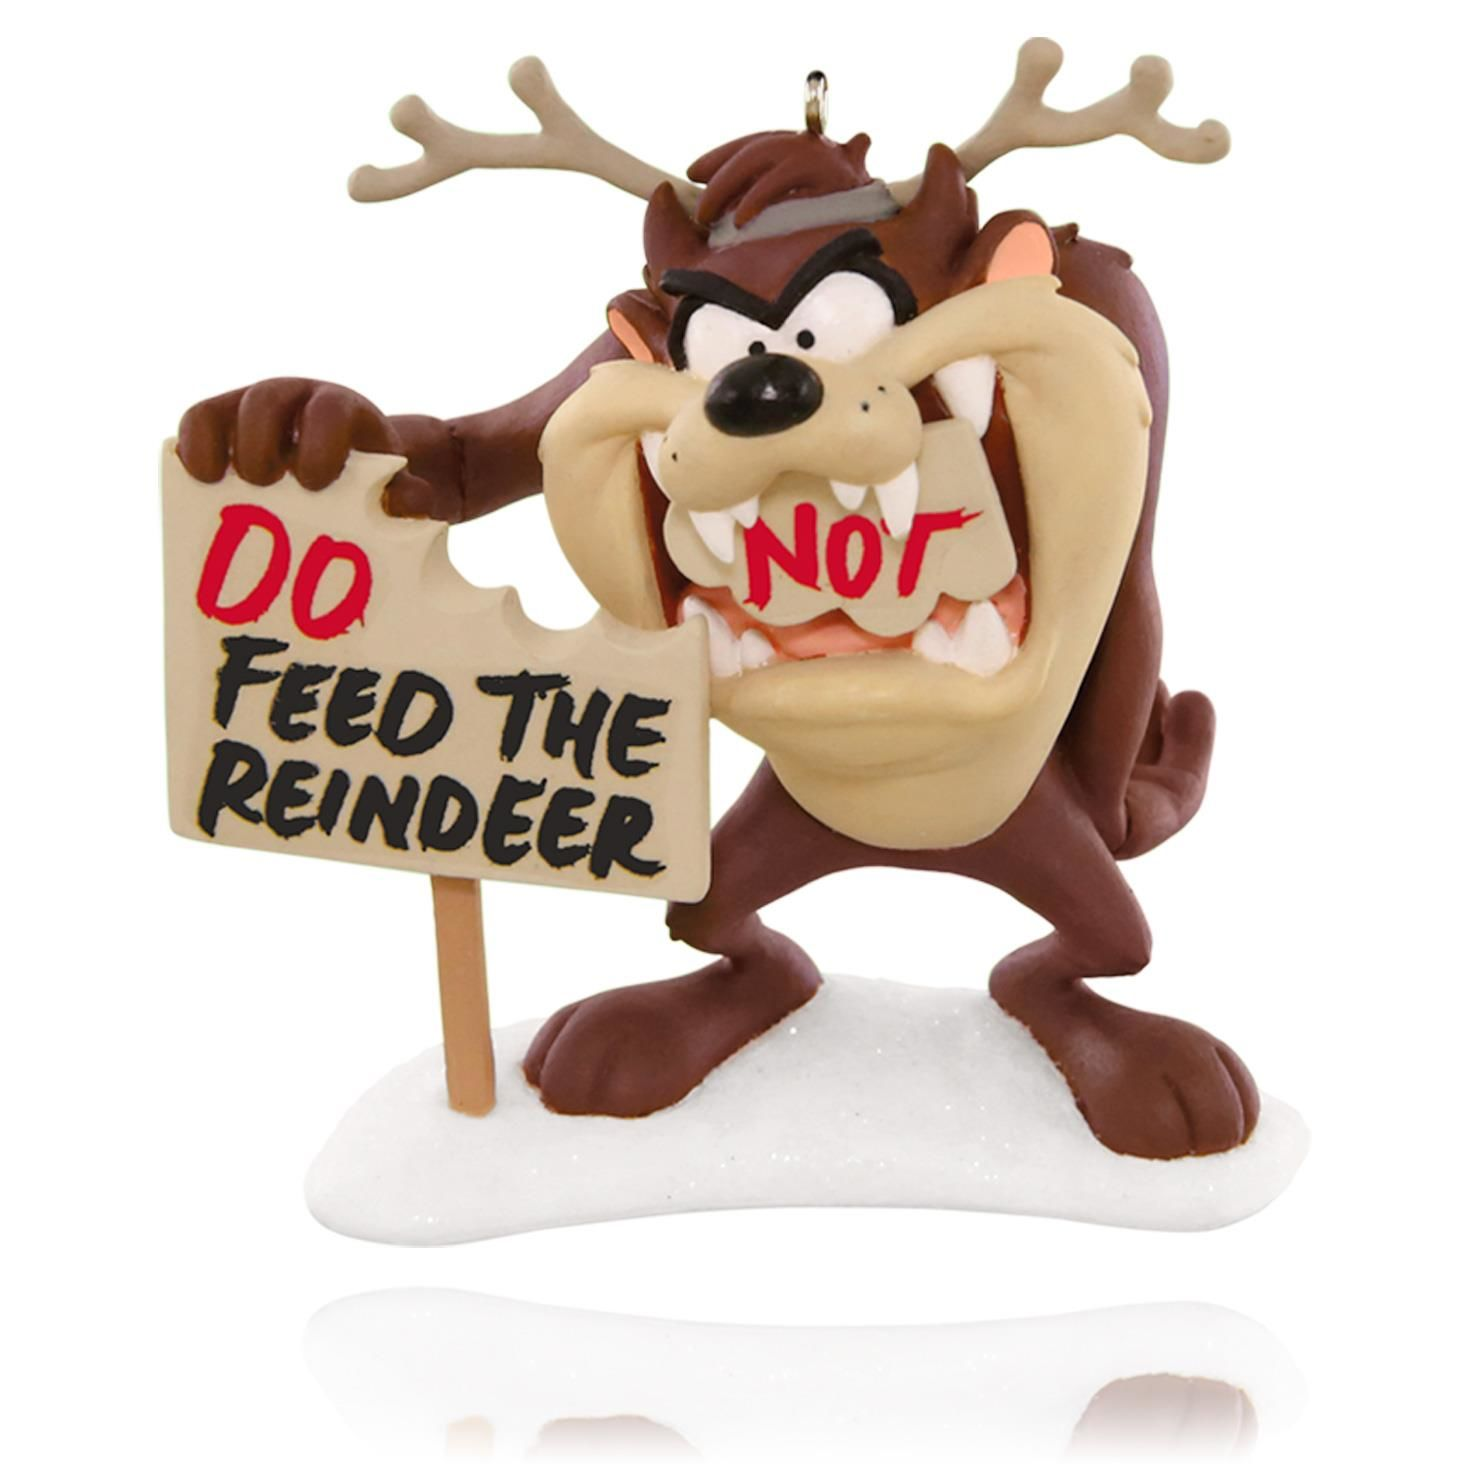 2015 Feed the Reindeer - DB